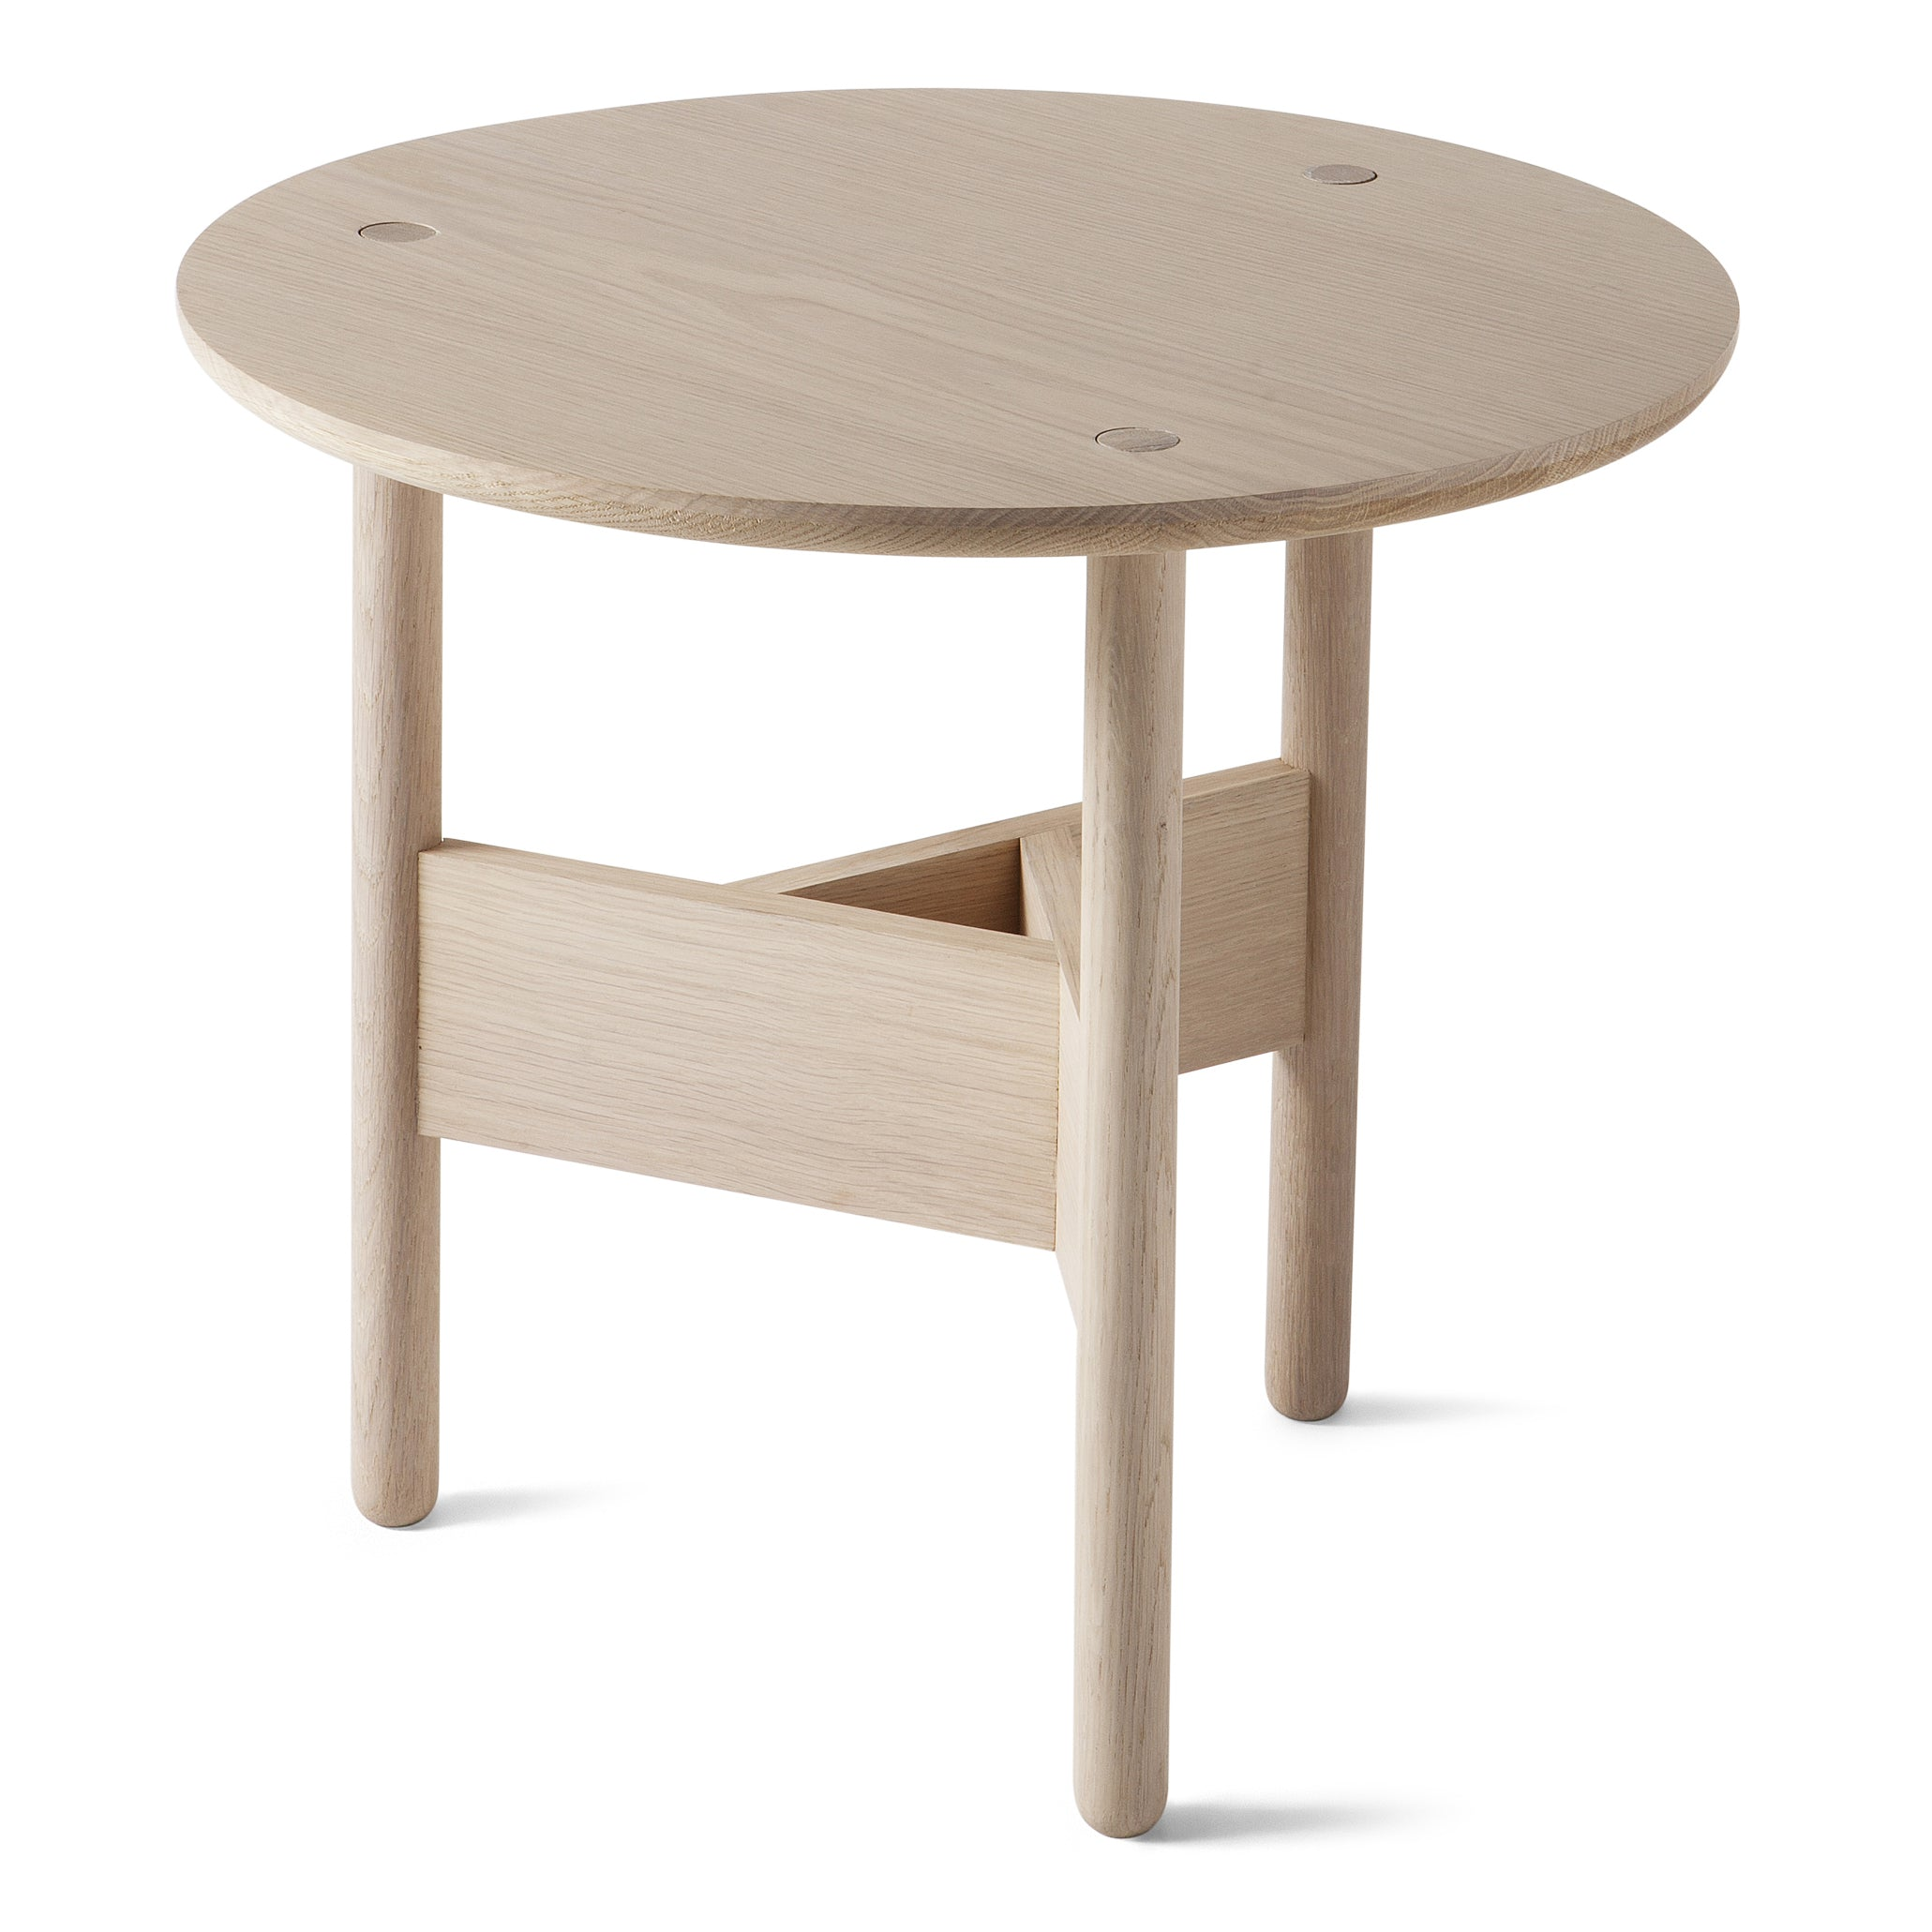 Orbital Coffee Table: Large + Oak